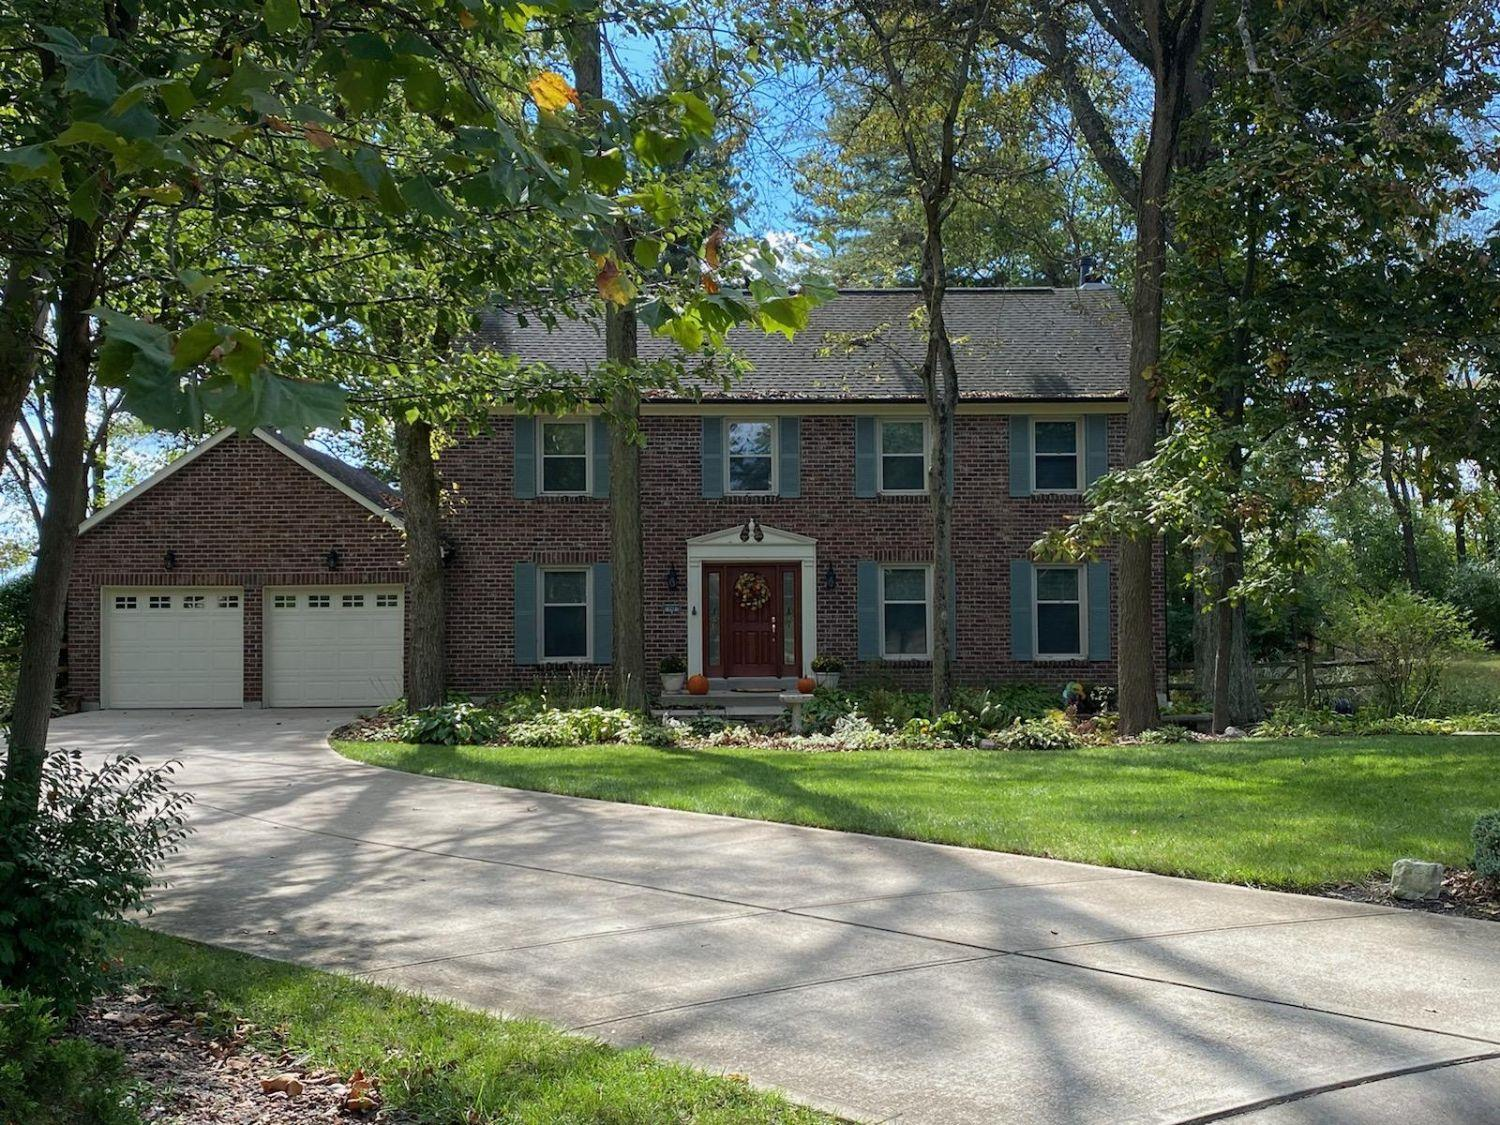 10401 Hopewell Hills Drive, Symmes Twp, Ohio 45249, 4 Bedrooms Bedrooms, 10 Rooms Rooms,2 BathroomsBathrooms,Single Family Residence,For Sale,Hopewell Hills,1719086